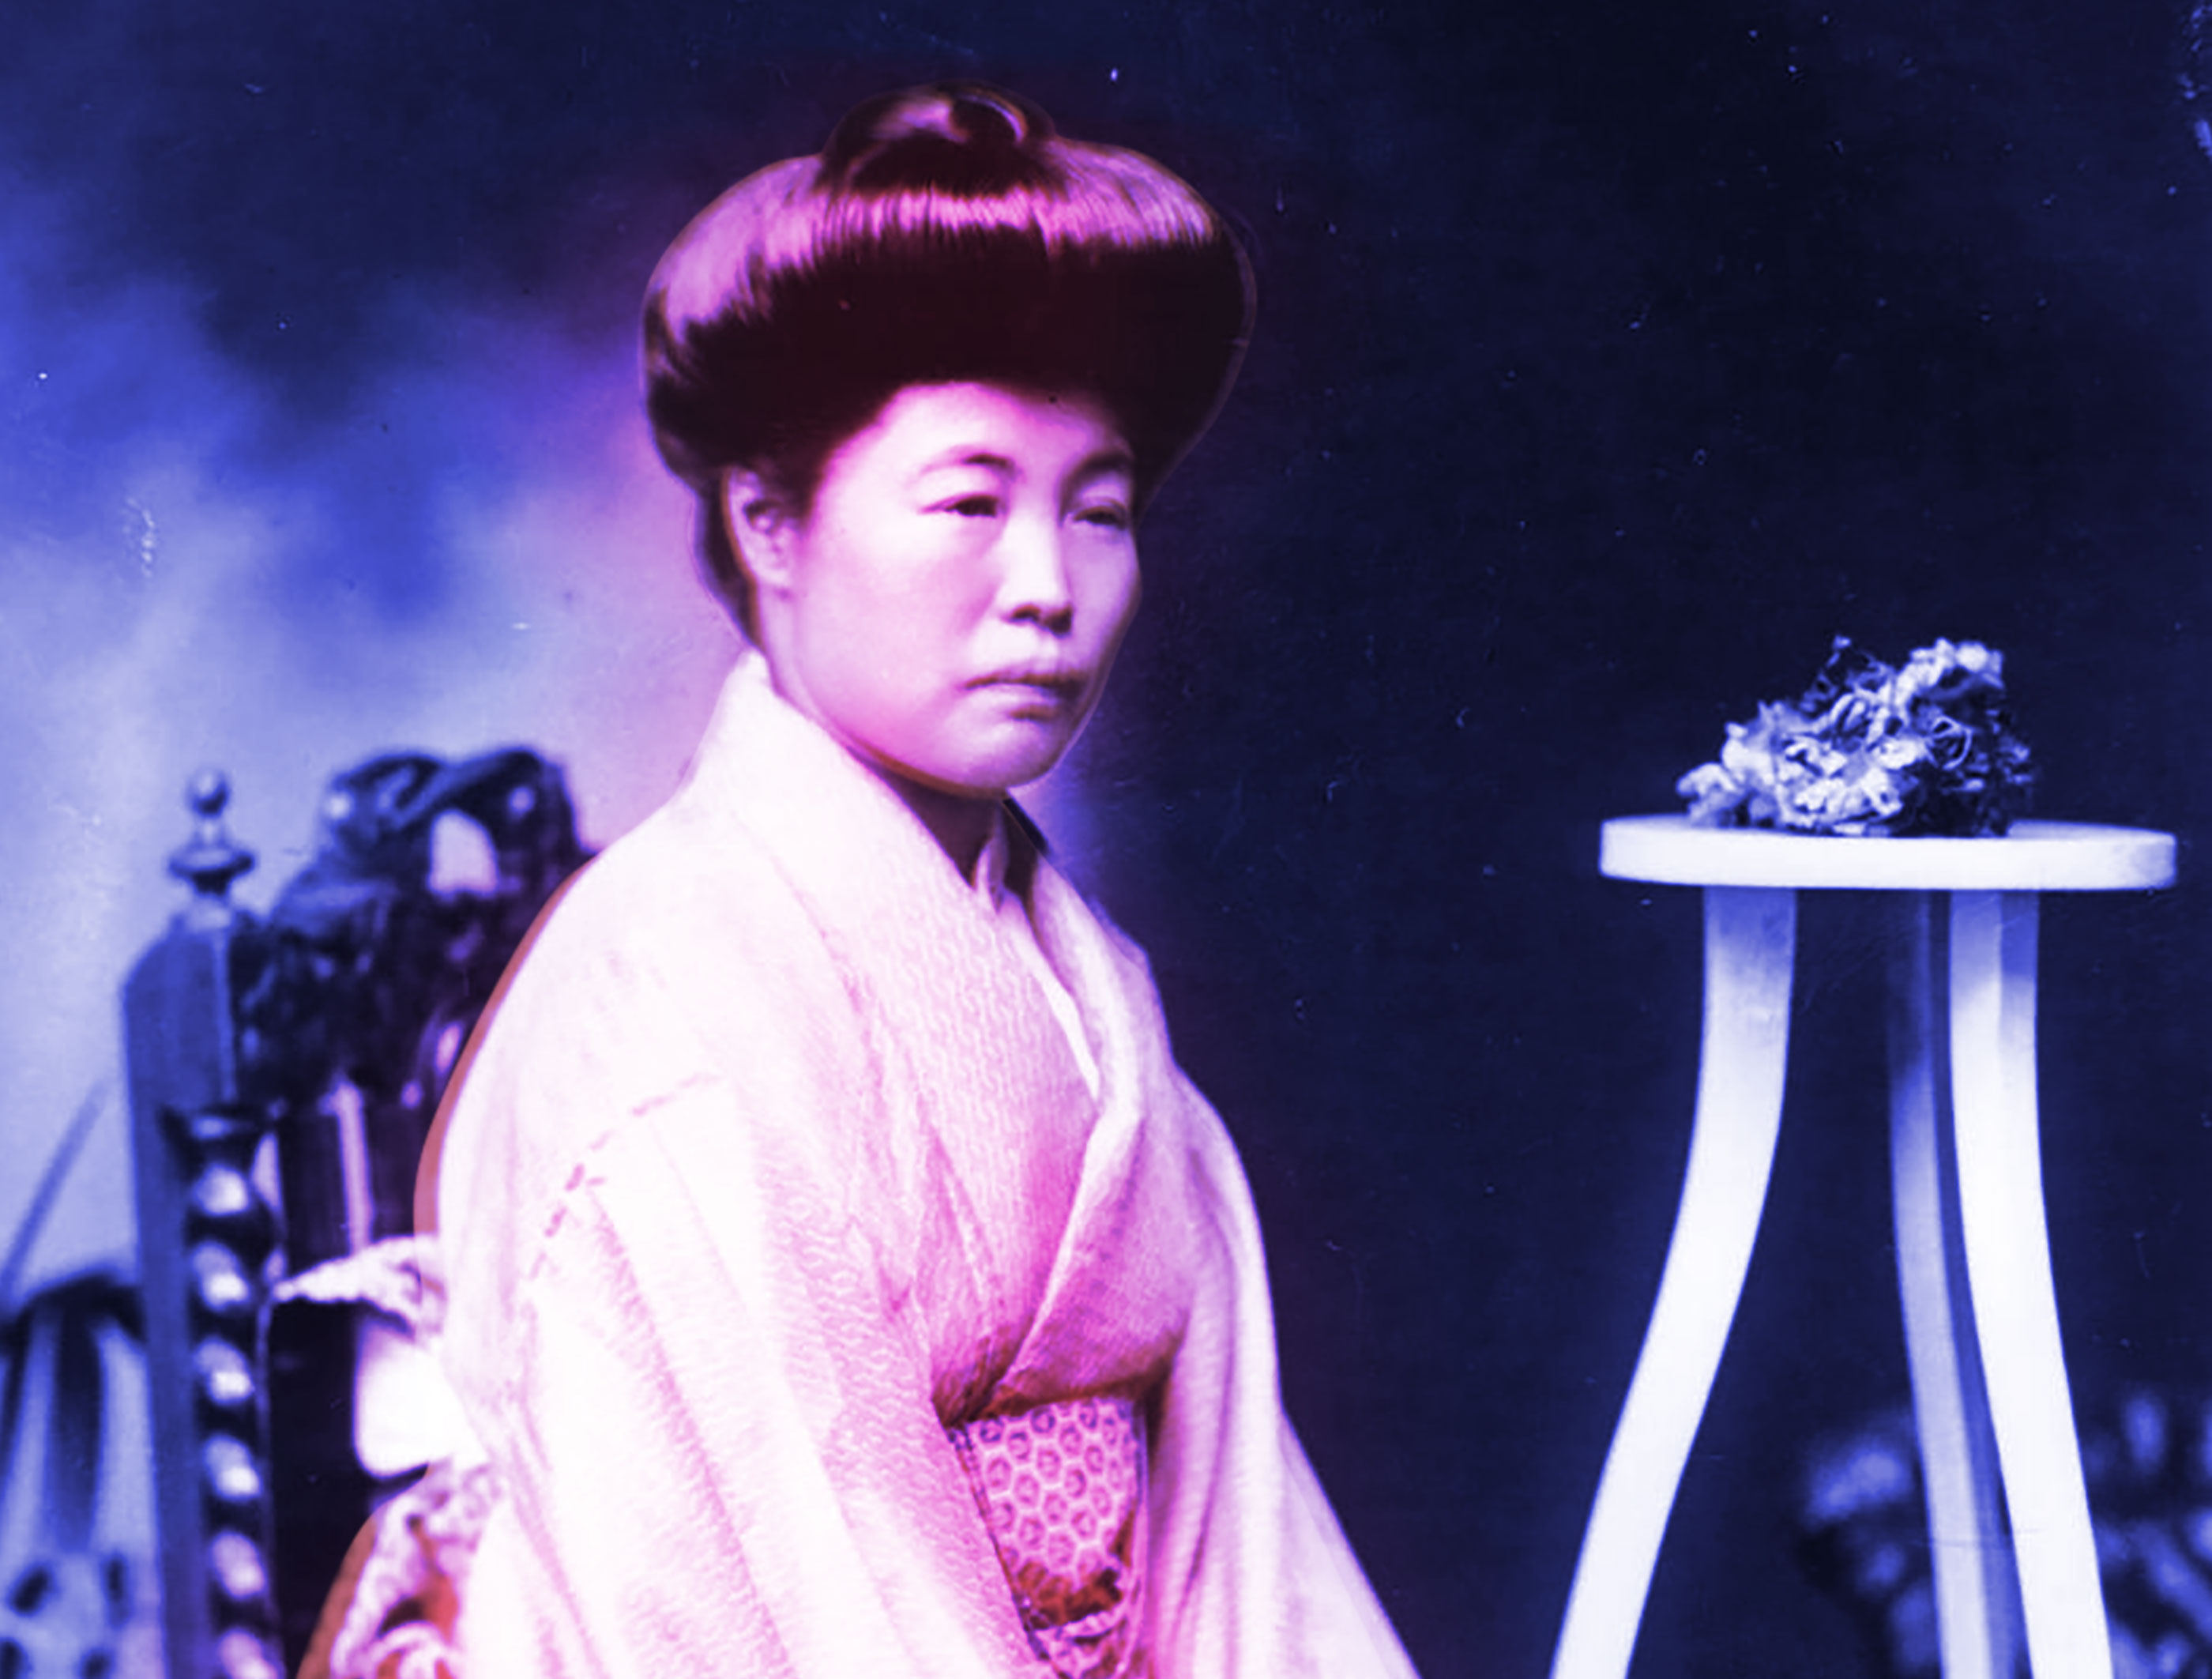 Colour-modified photograph of an early 20th Century Japanese sex worker